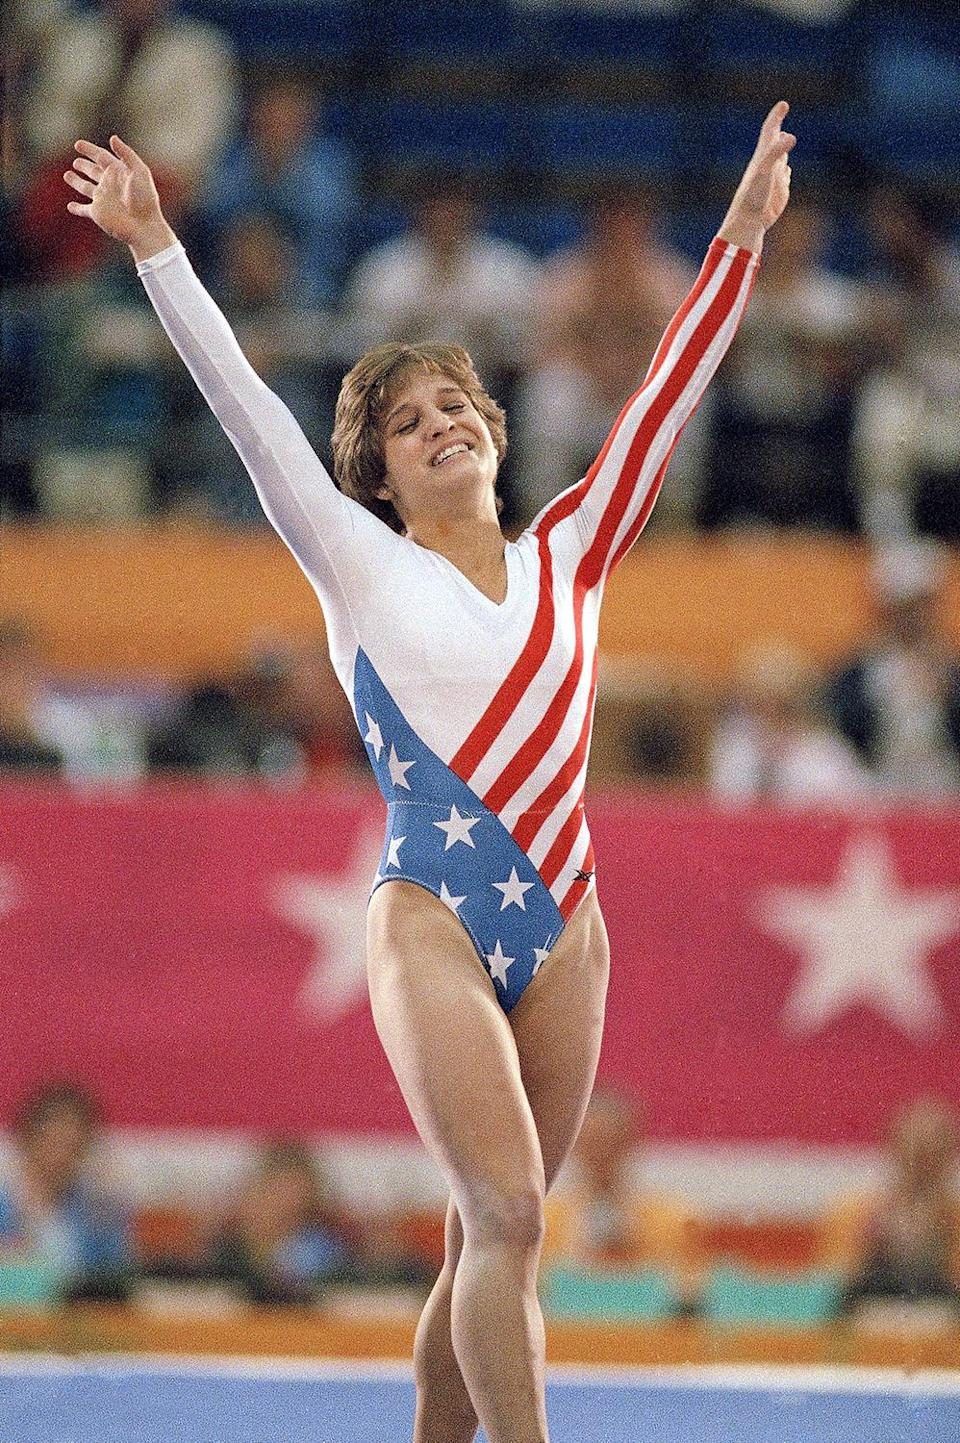 <p>Mary Lou Retton celebrates her gold medal win at the 1984 Olympic Games in Los Angeles. (AP Photo/Lionel Cironneau, File) </p>